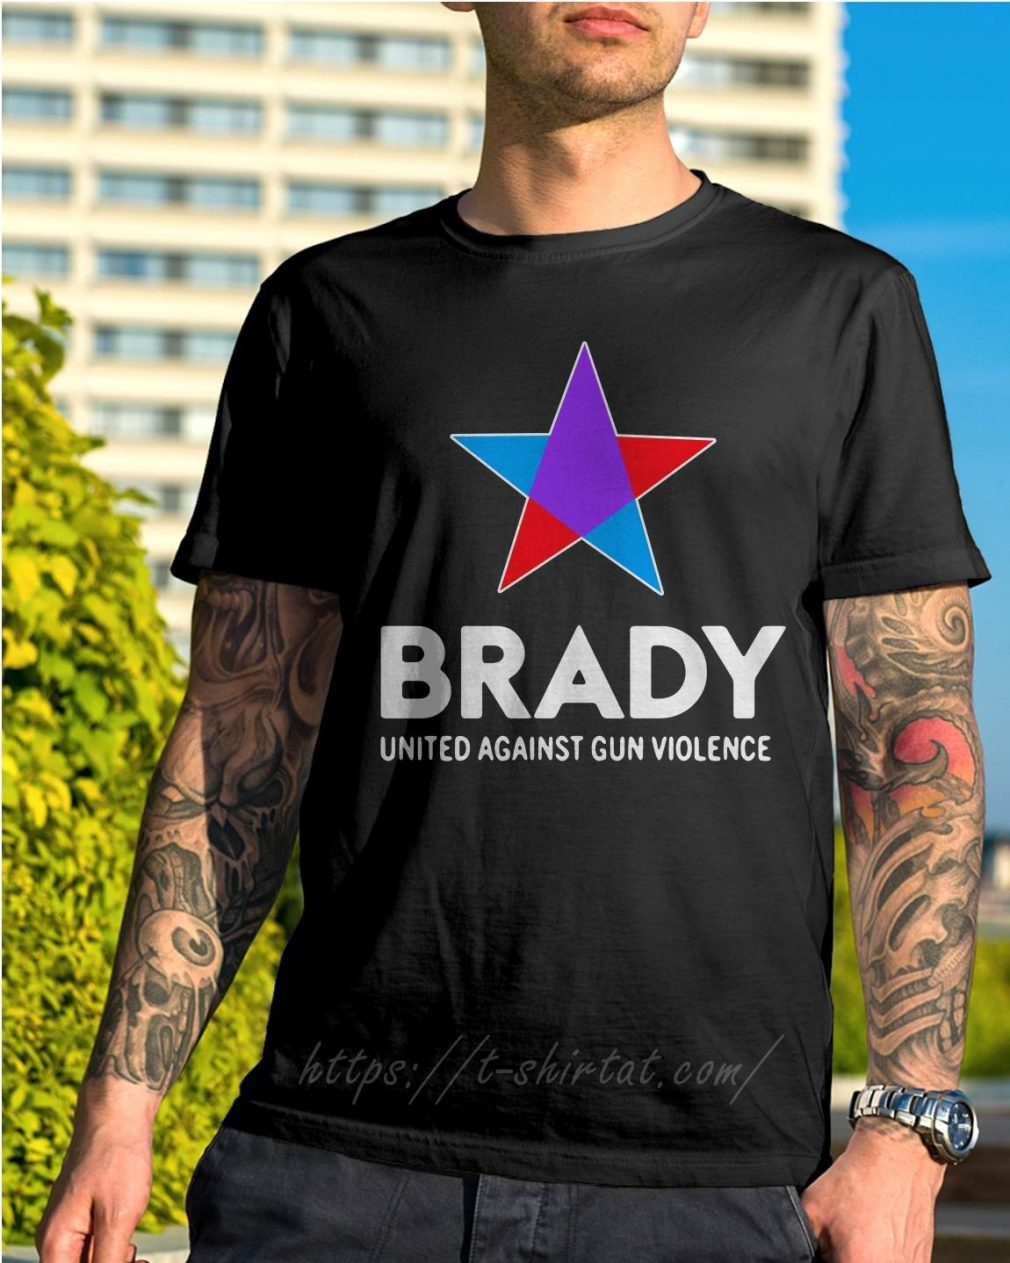 Brady united against gun violence take action not sides shirt